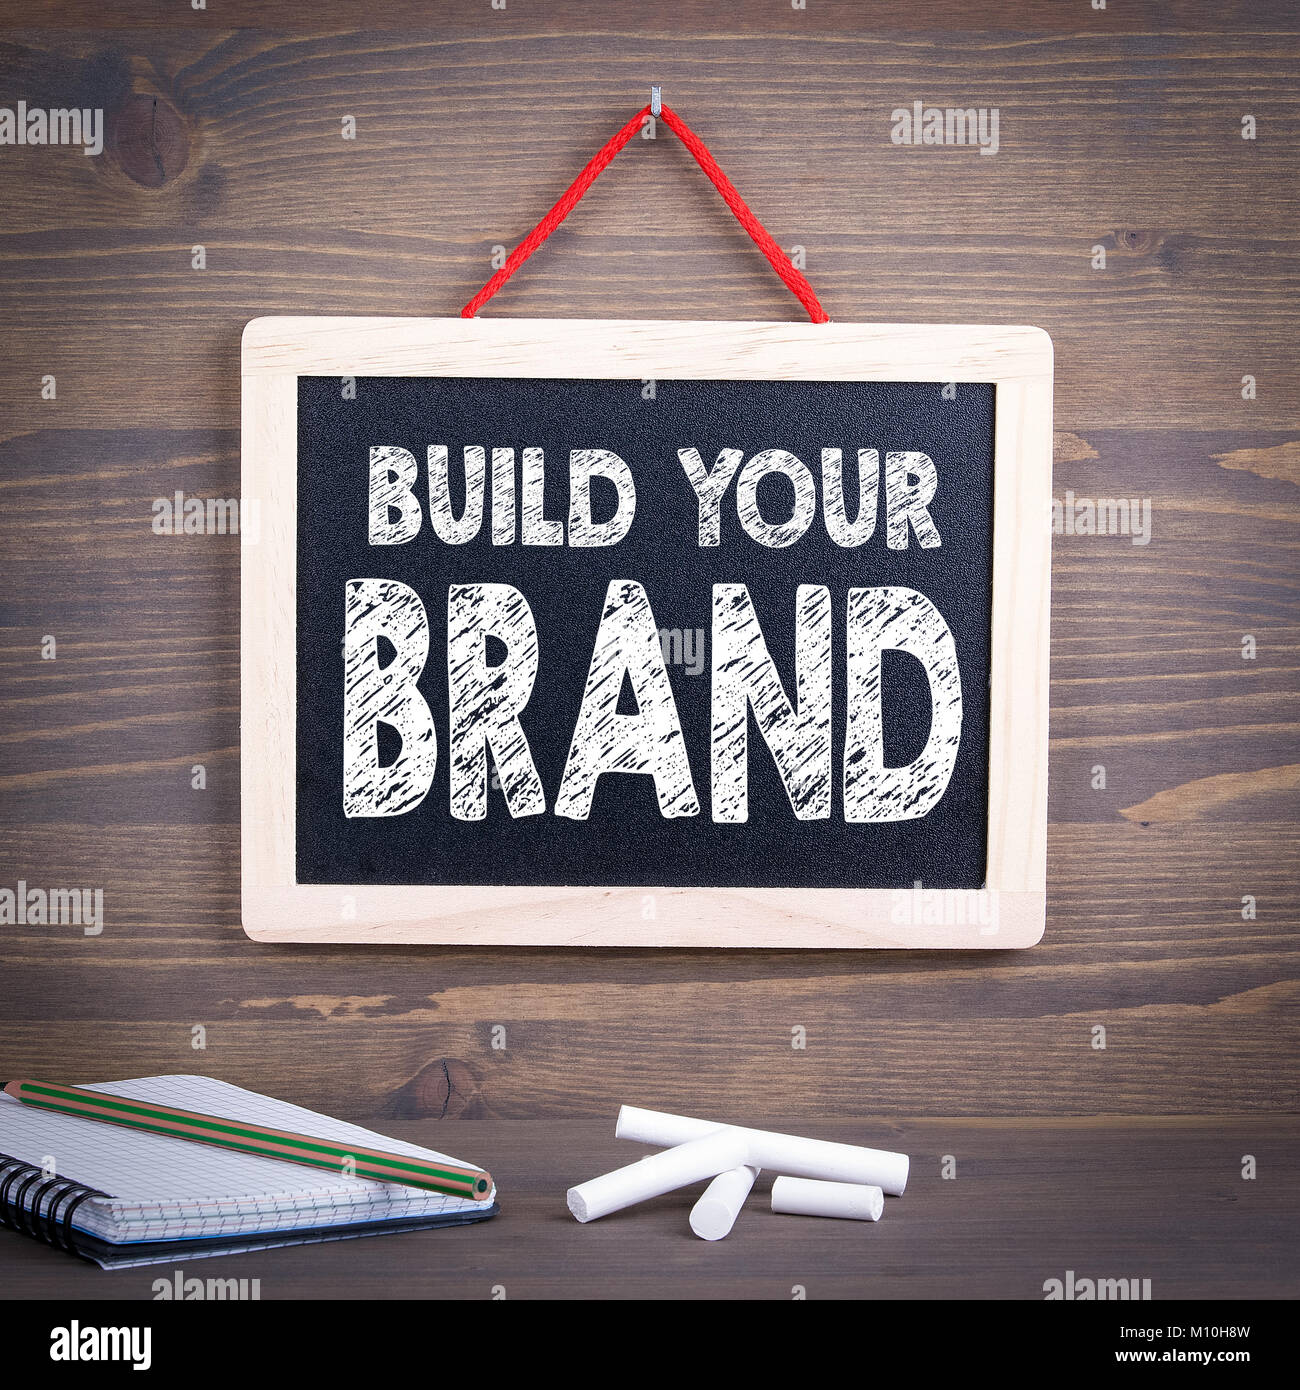 build your brand concept. Chalkboard on a wooden background - Stock Image